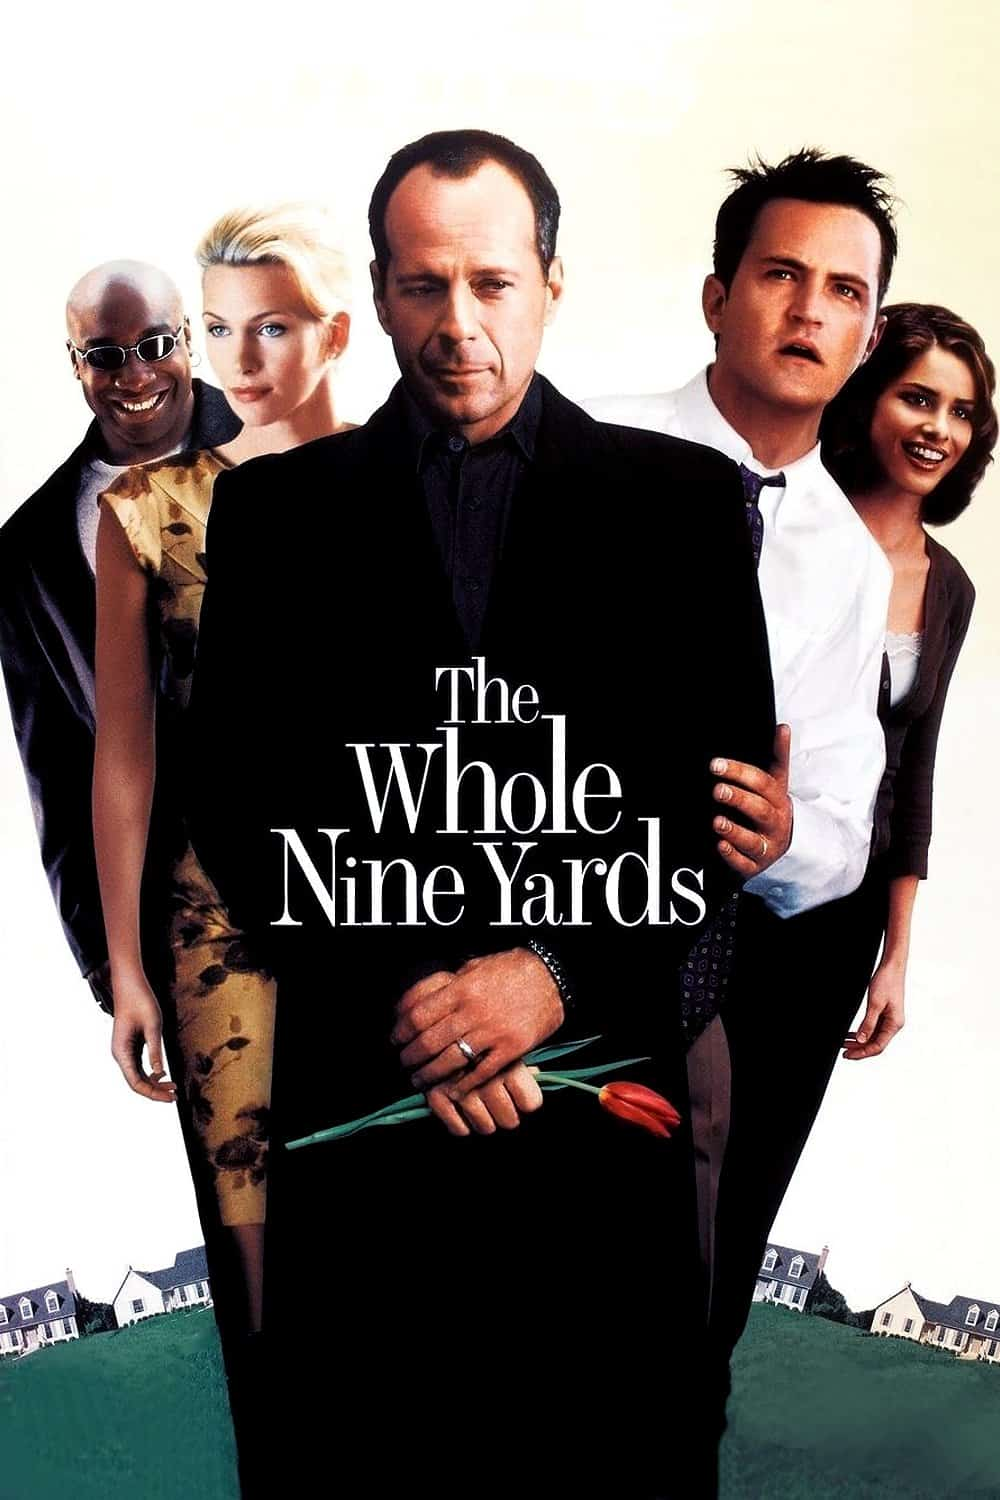 The Whole Nine Yards, 2000